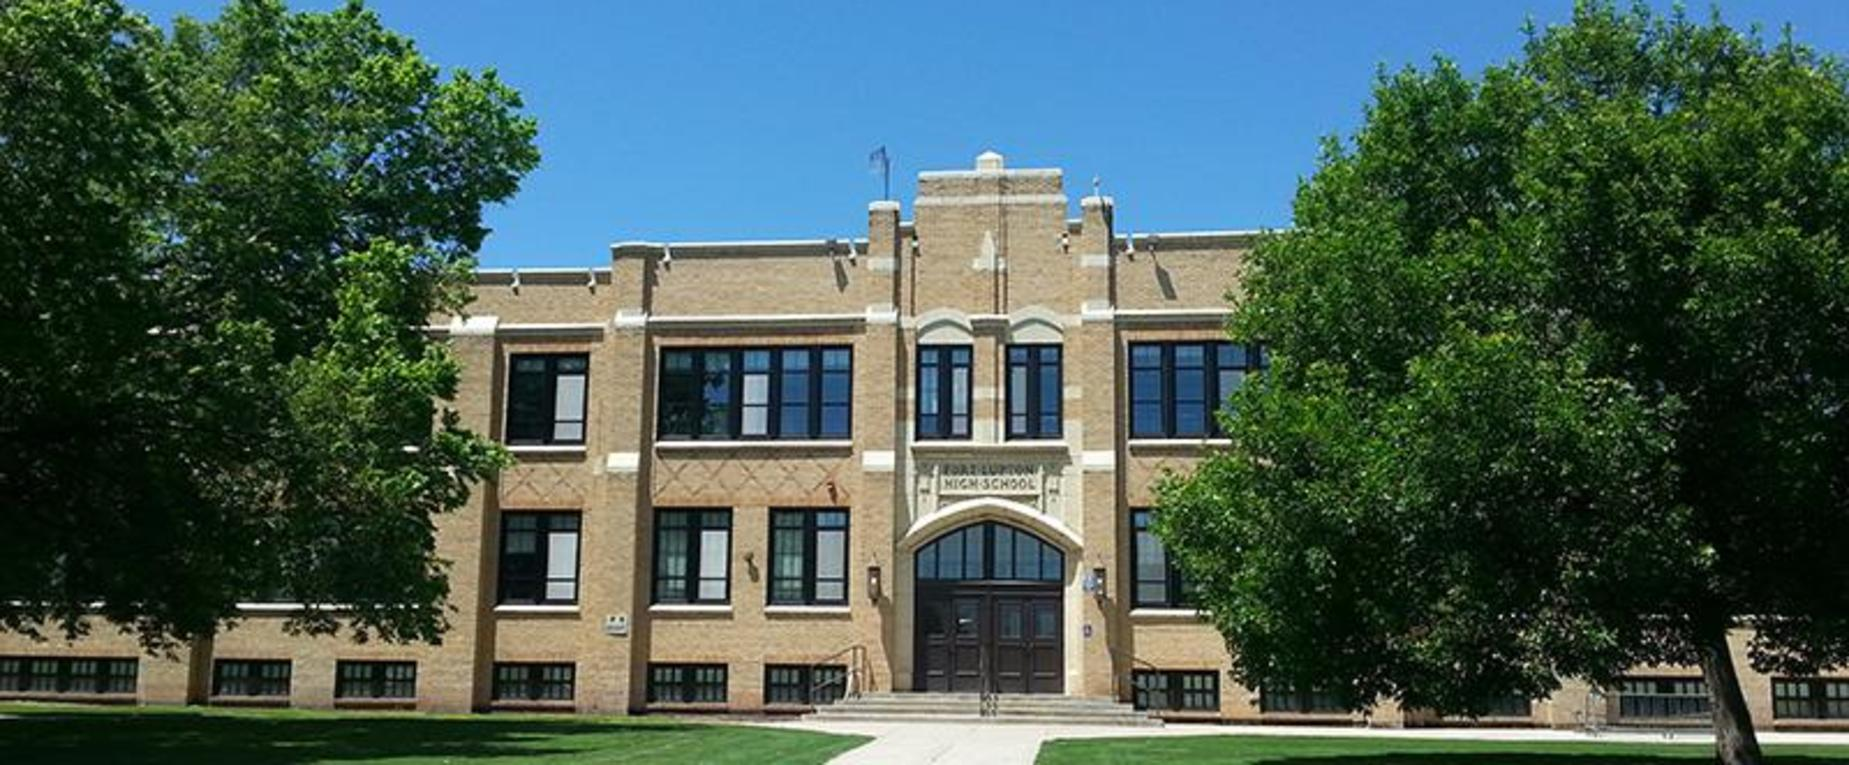 Fort Lupton Middle School Building